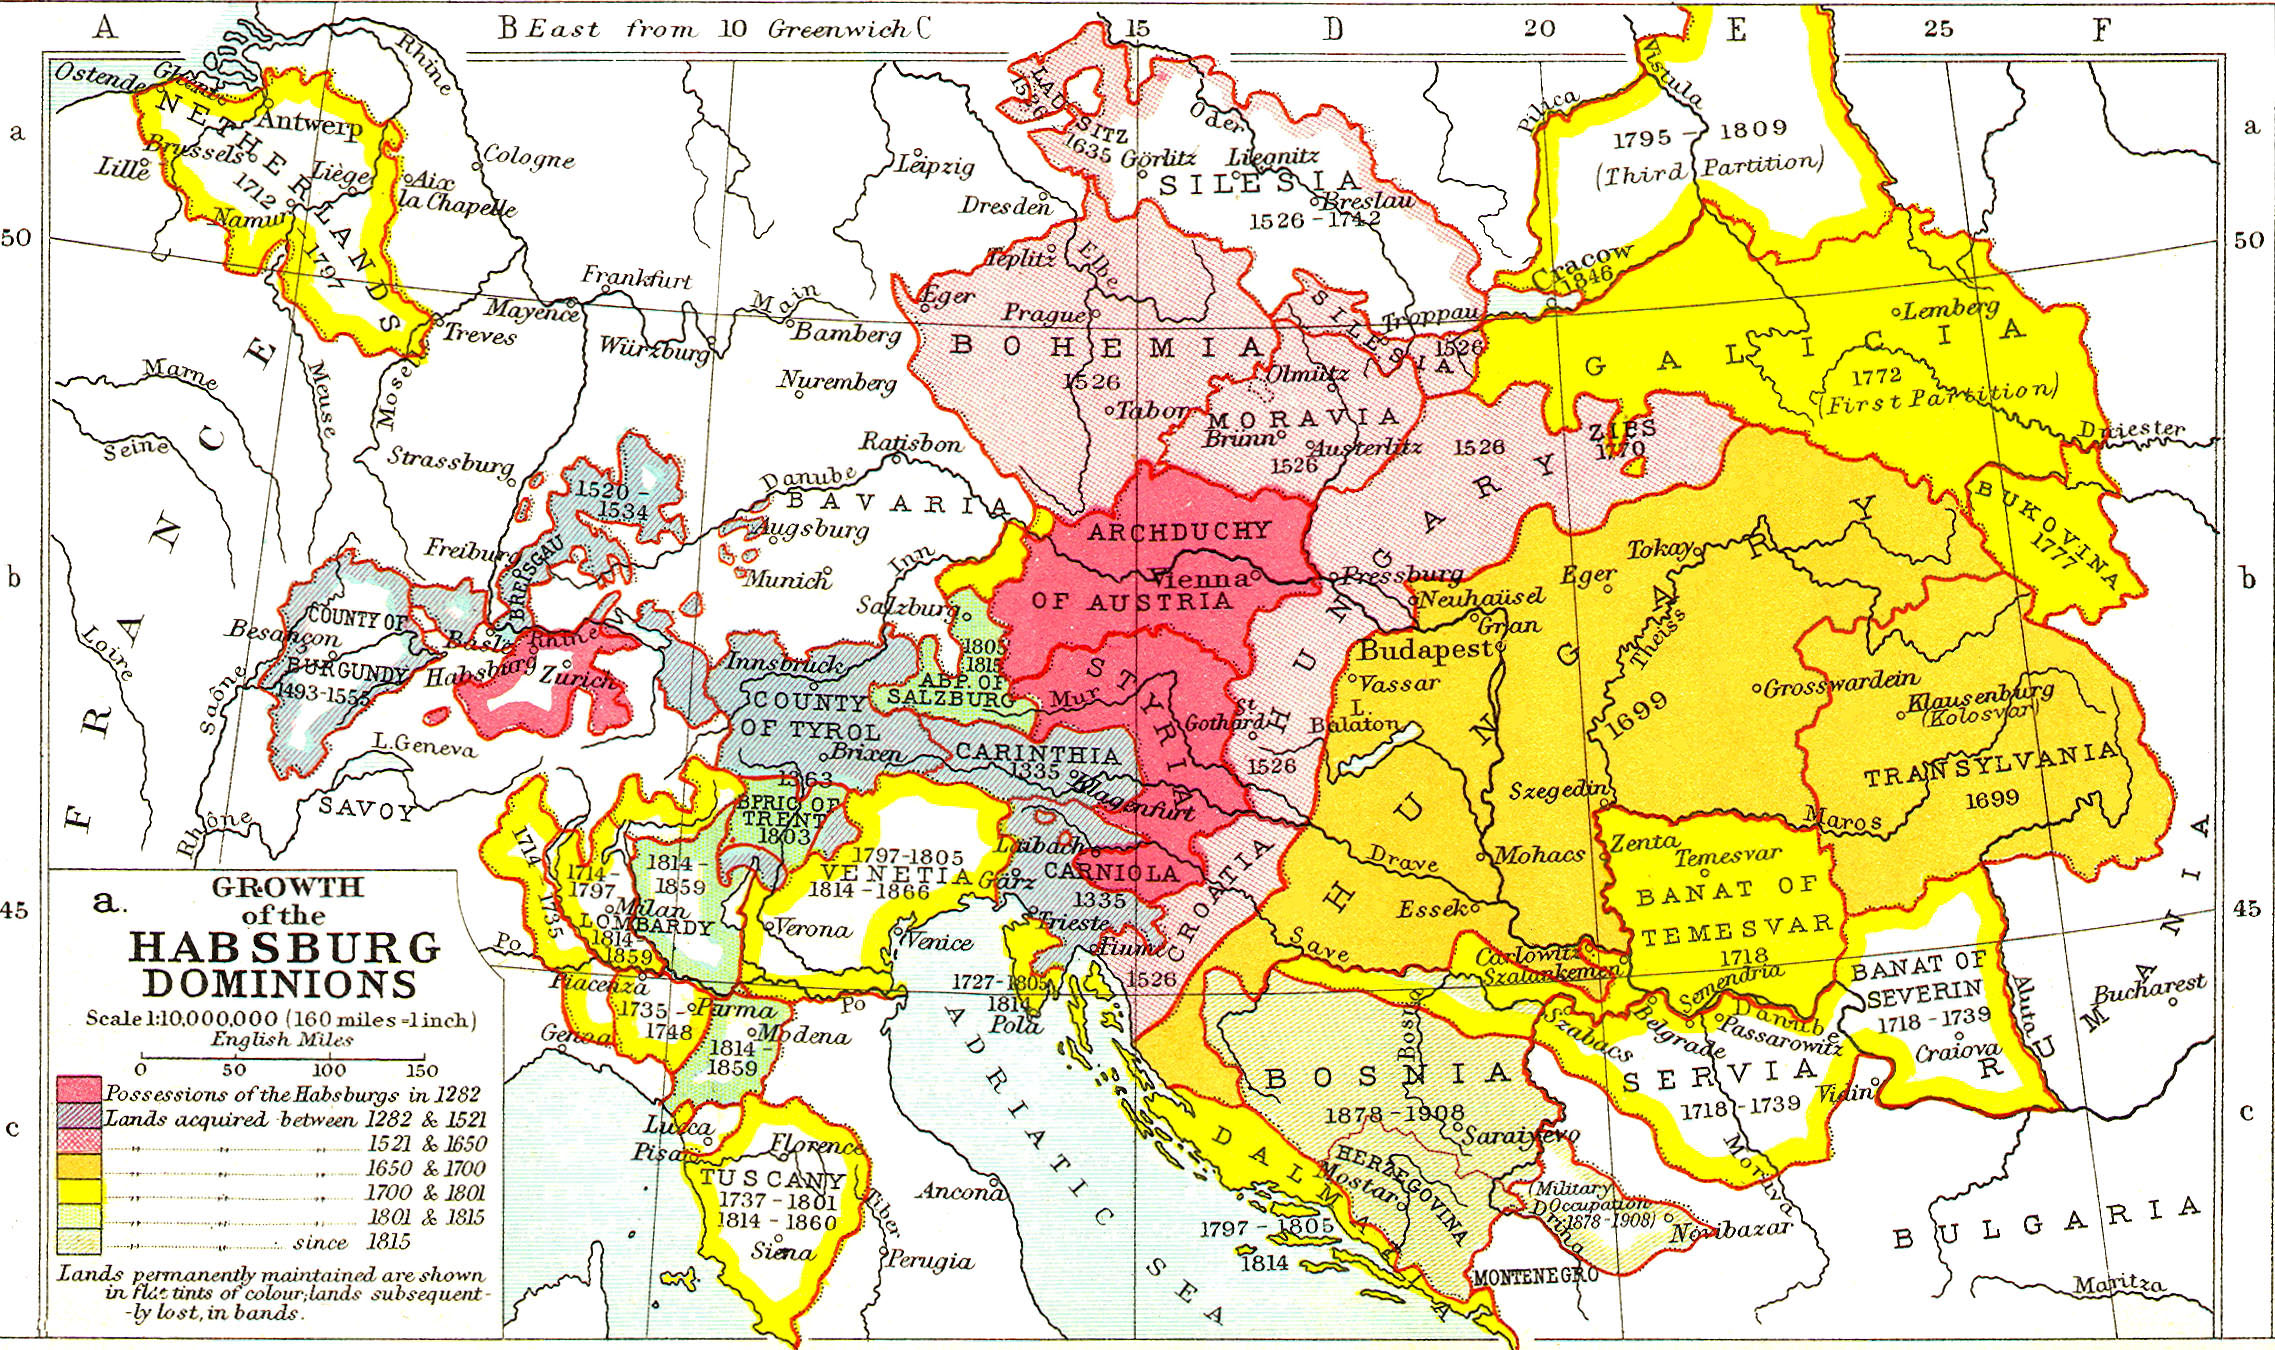 http://upload.wikimedia.org/wikipedia/commons/8/8e/Growth_of_Habsburg_territories.jpg